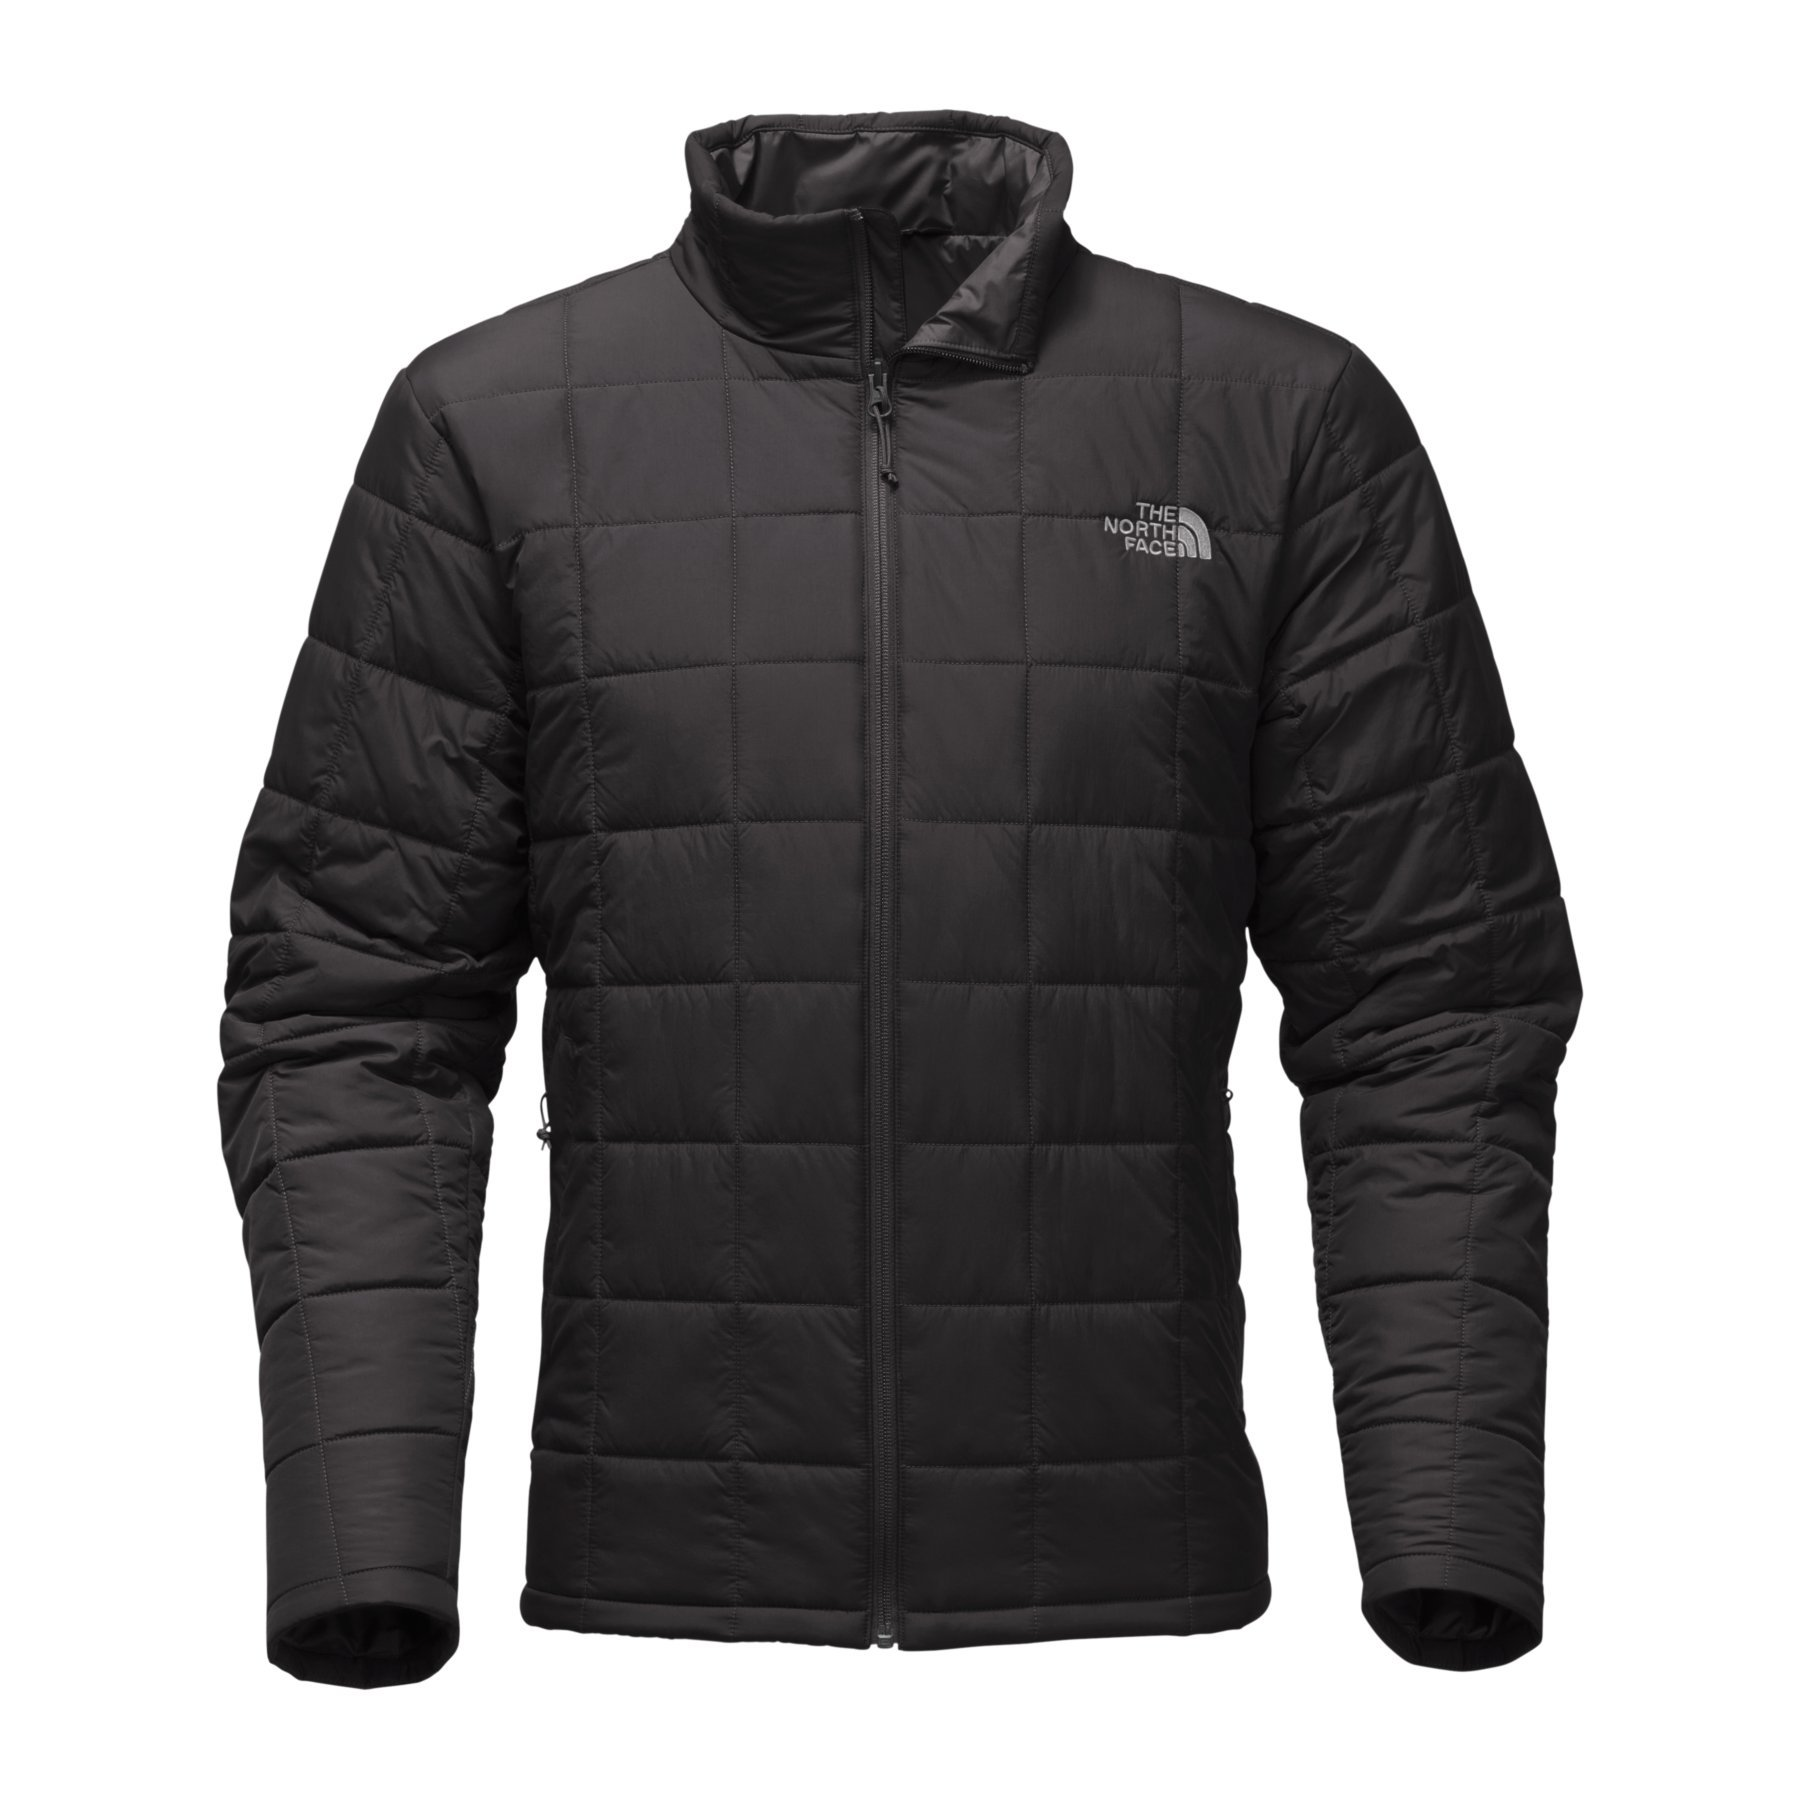 The North Face Men's Harway Jacket - TNF Black - M